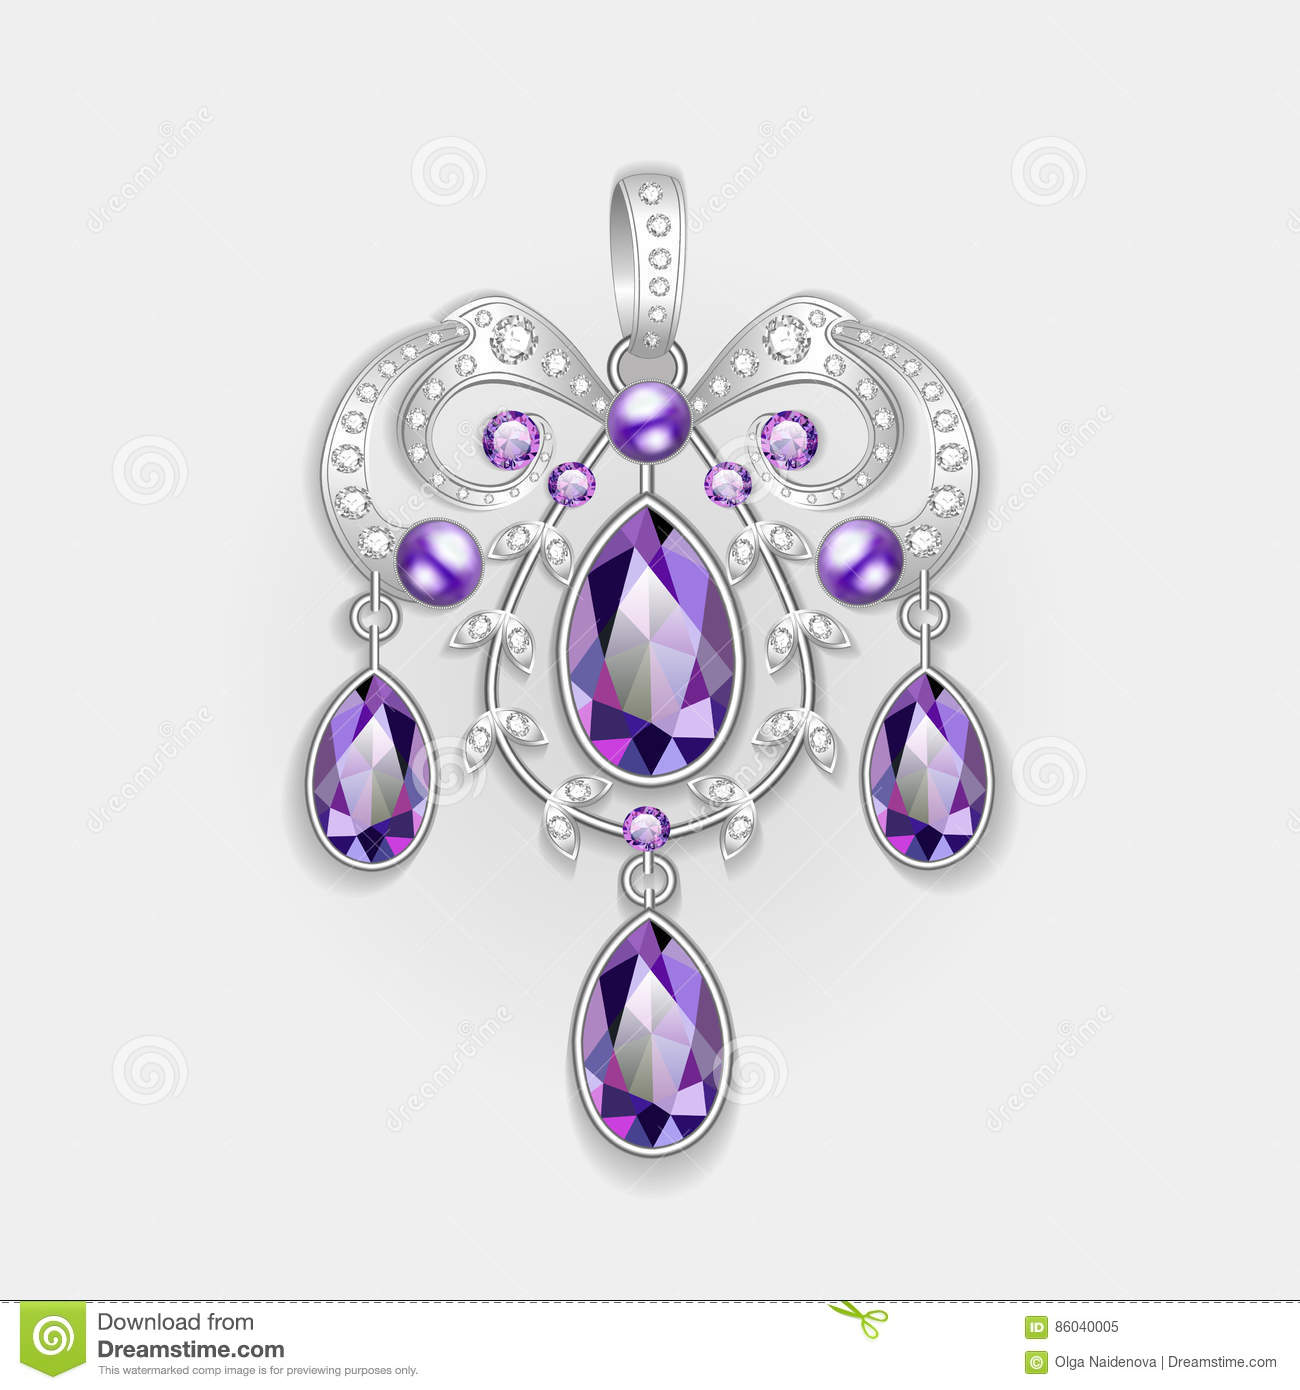 brooch pendant with and precious stones. Filigree